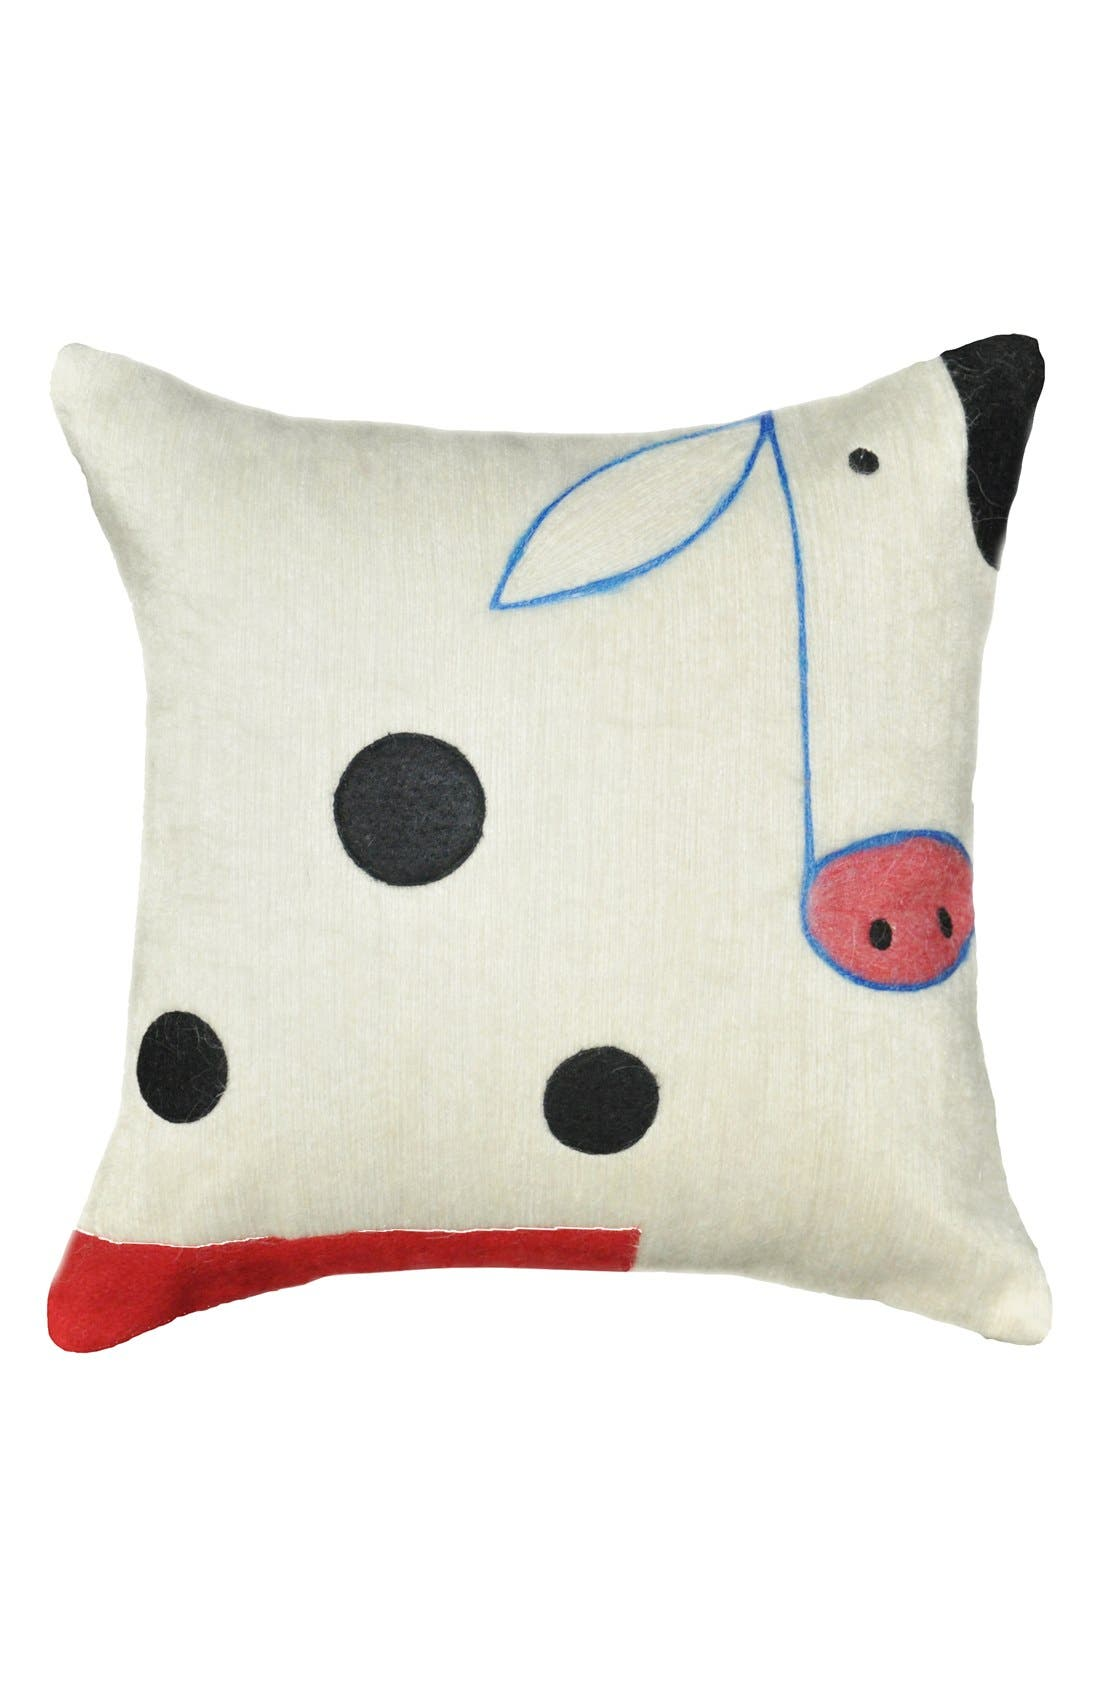 Alternate Image 1 Selected - Amity Home 'Cow' Accent Pillow